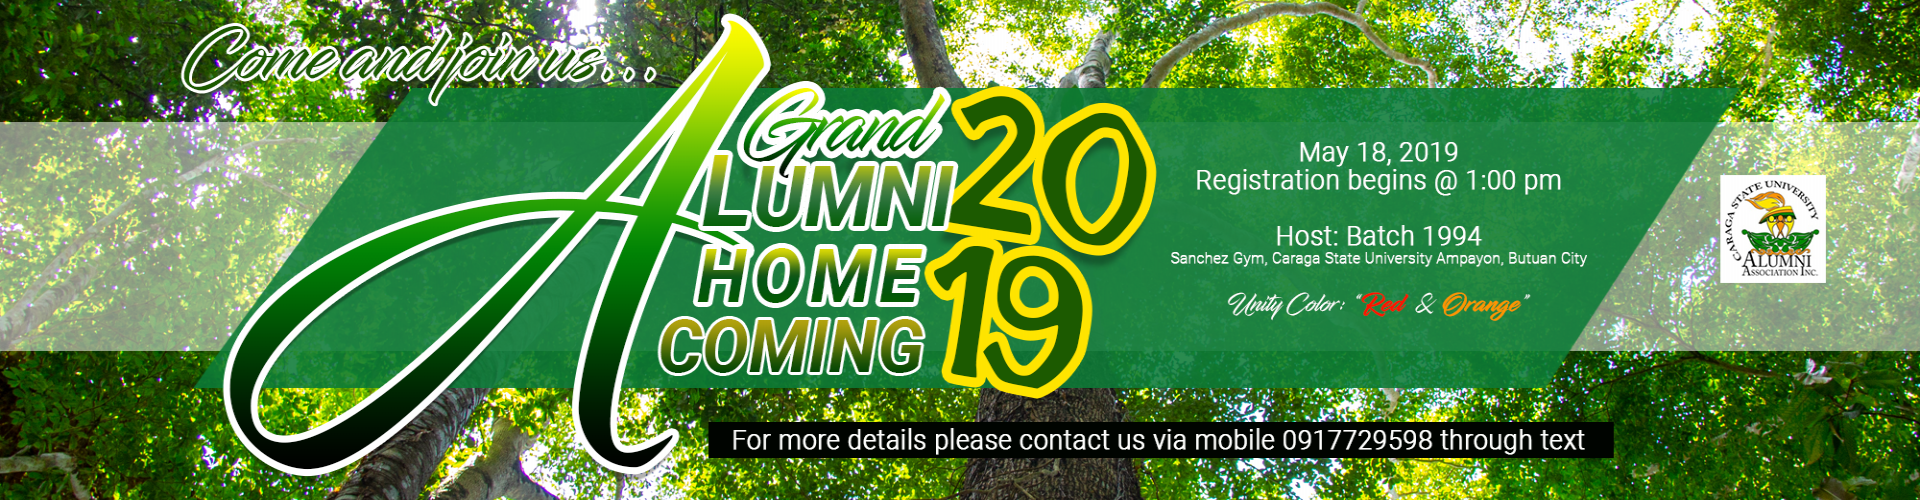 CSU Grand Alumni Homecoming 2019